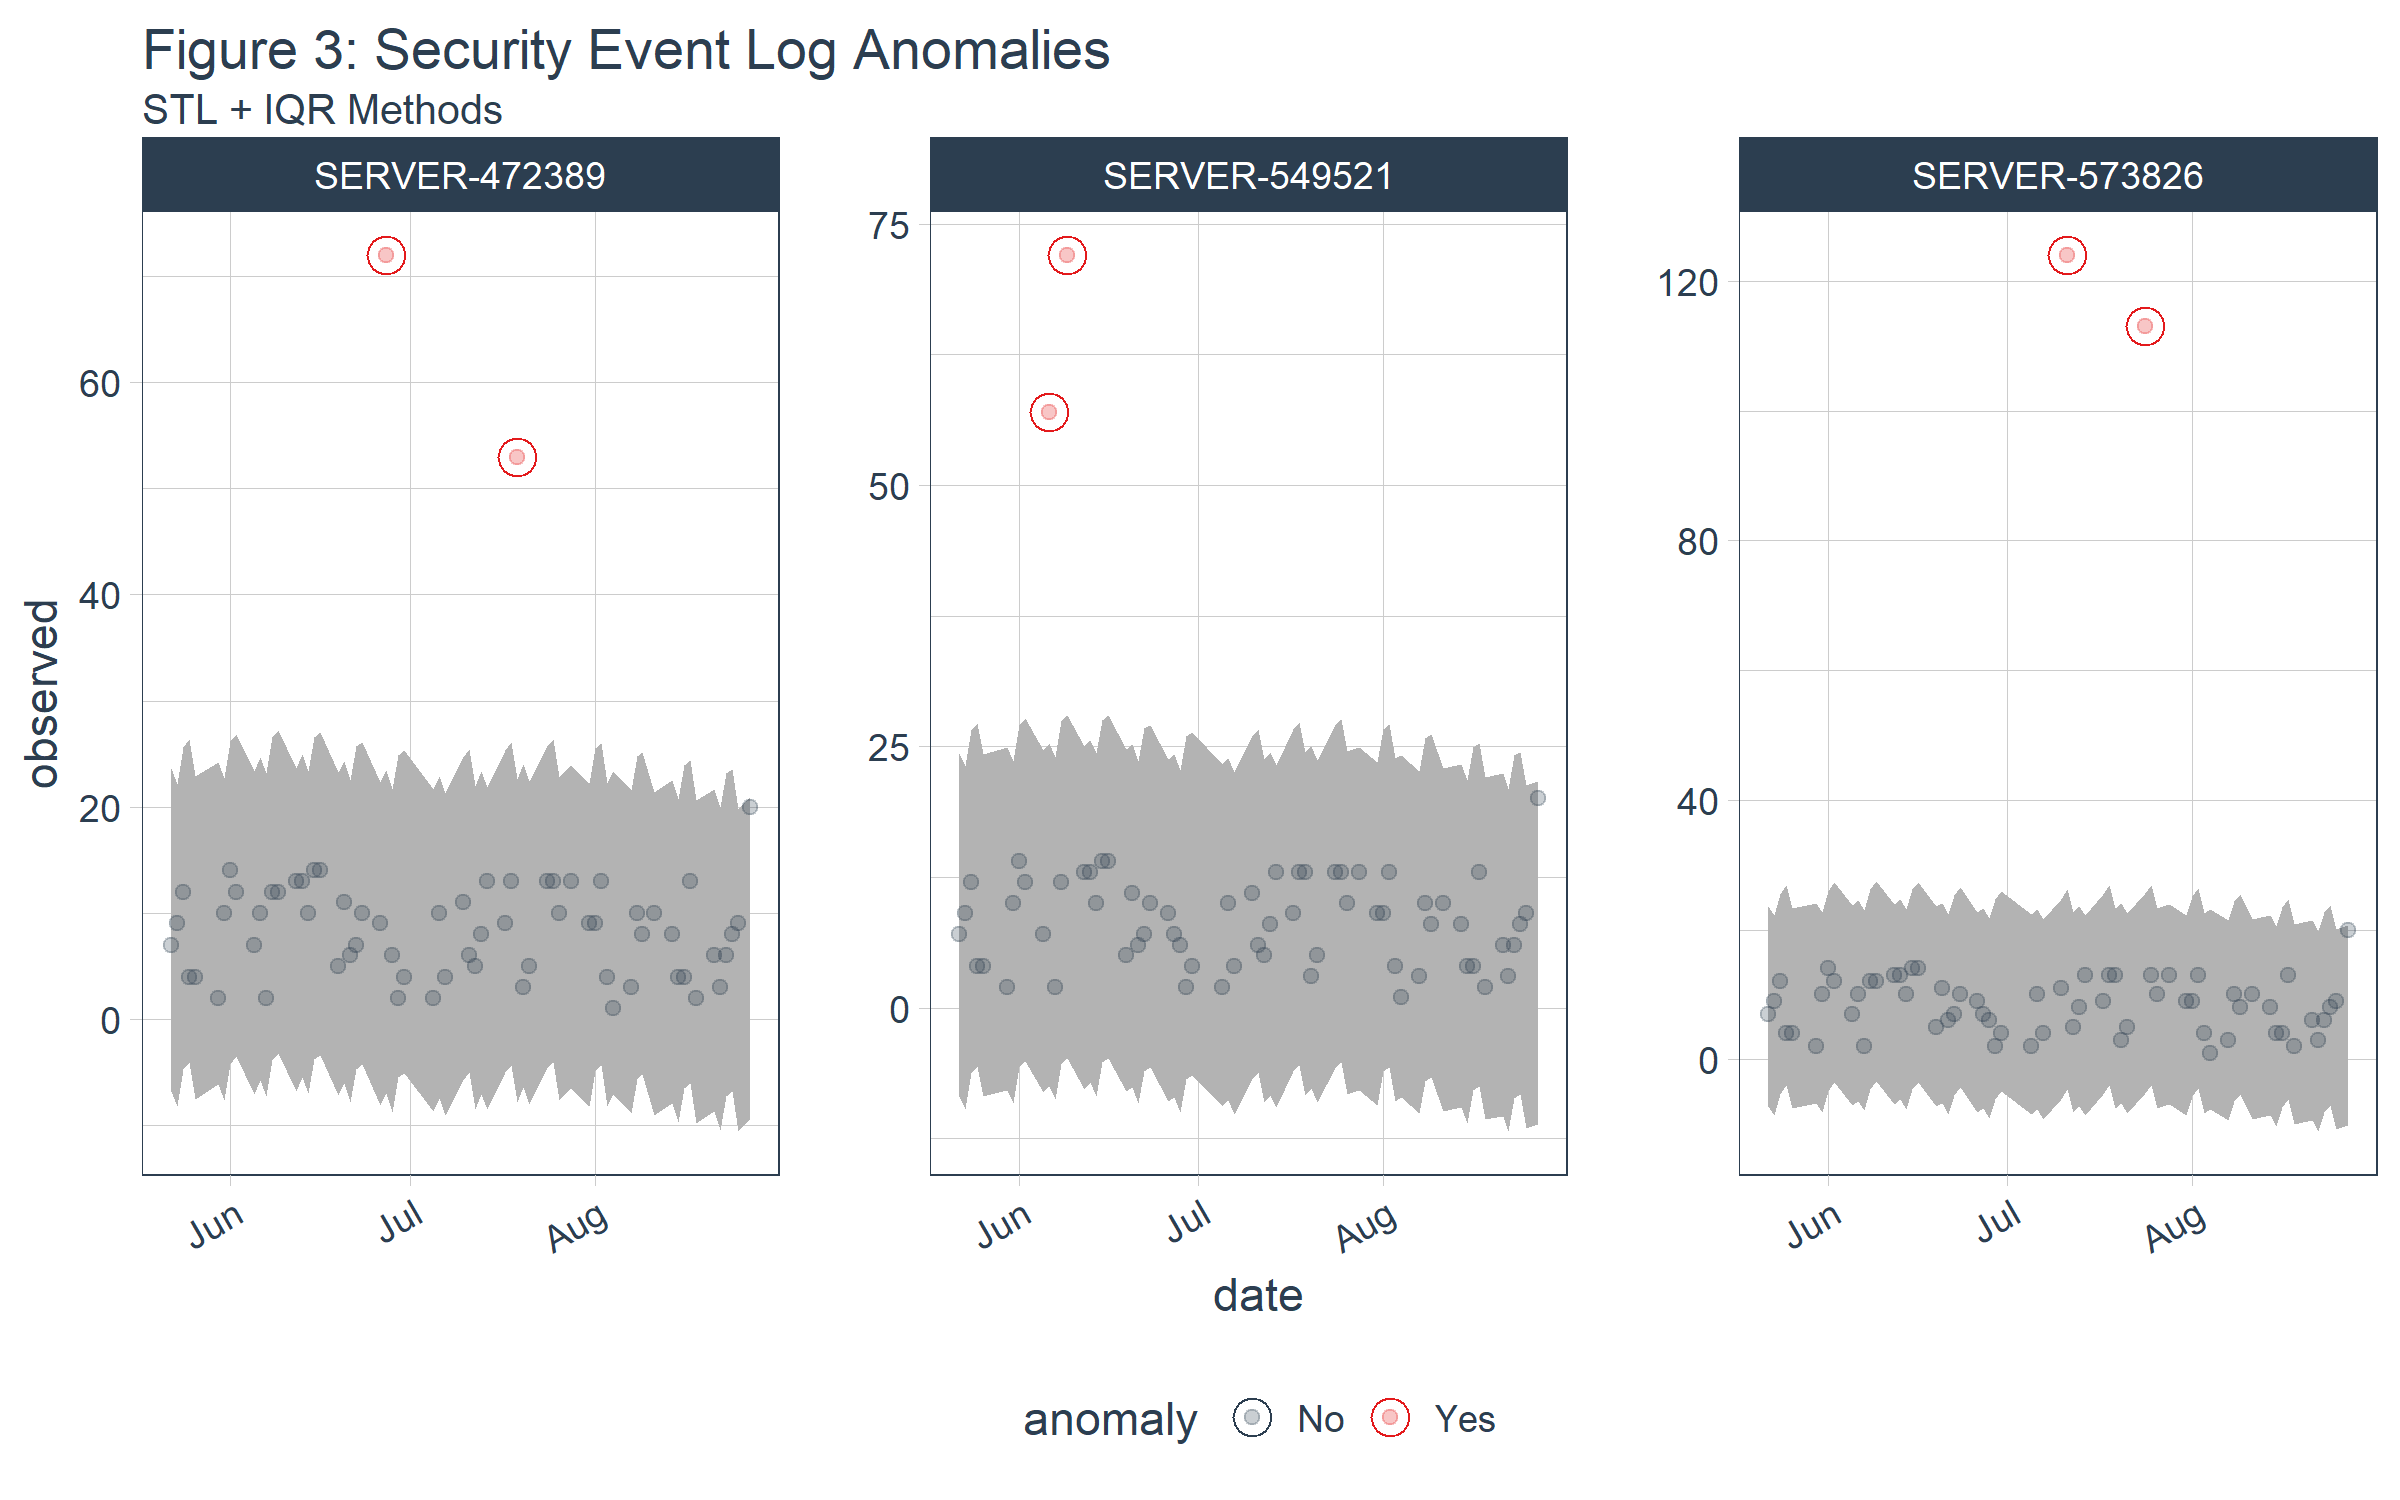 Figure 3: Security Event Log Anomalies